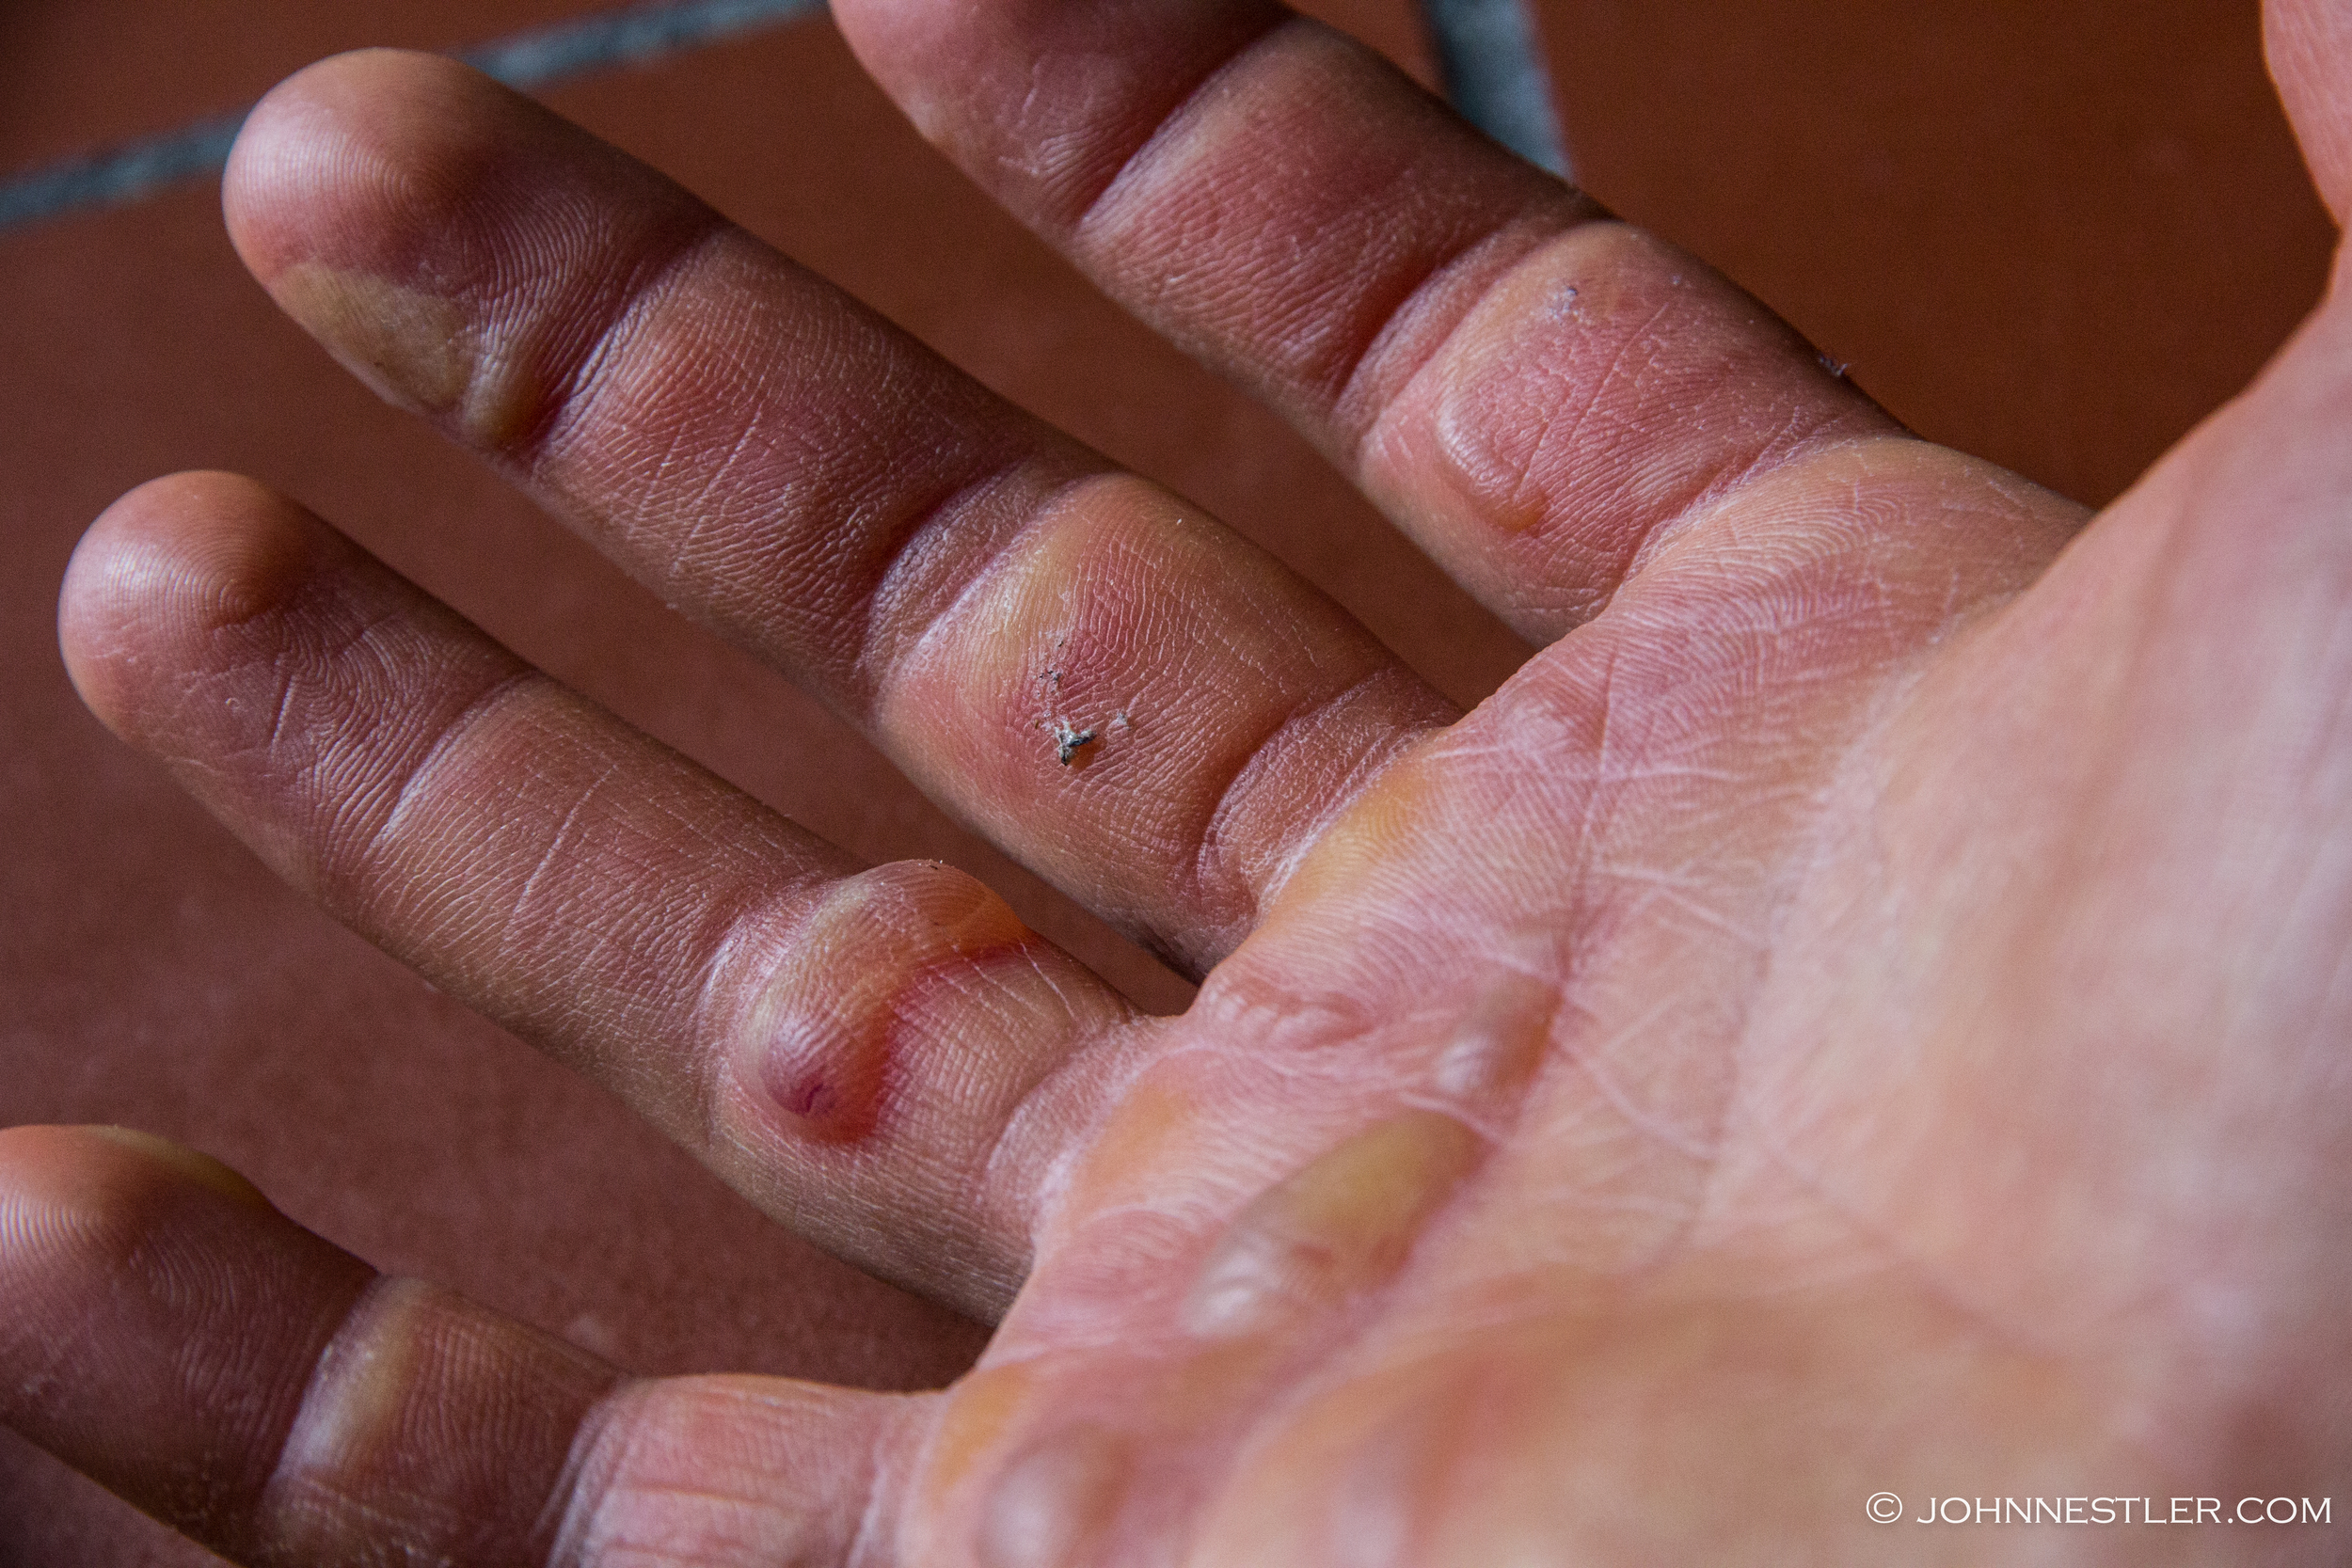 Painfully blistered hands after the race. Don't let this happen!